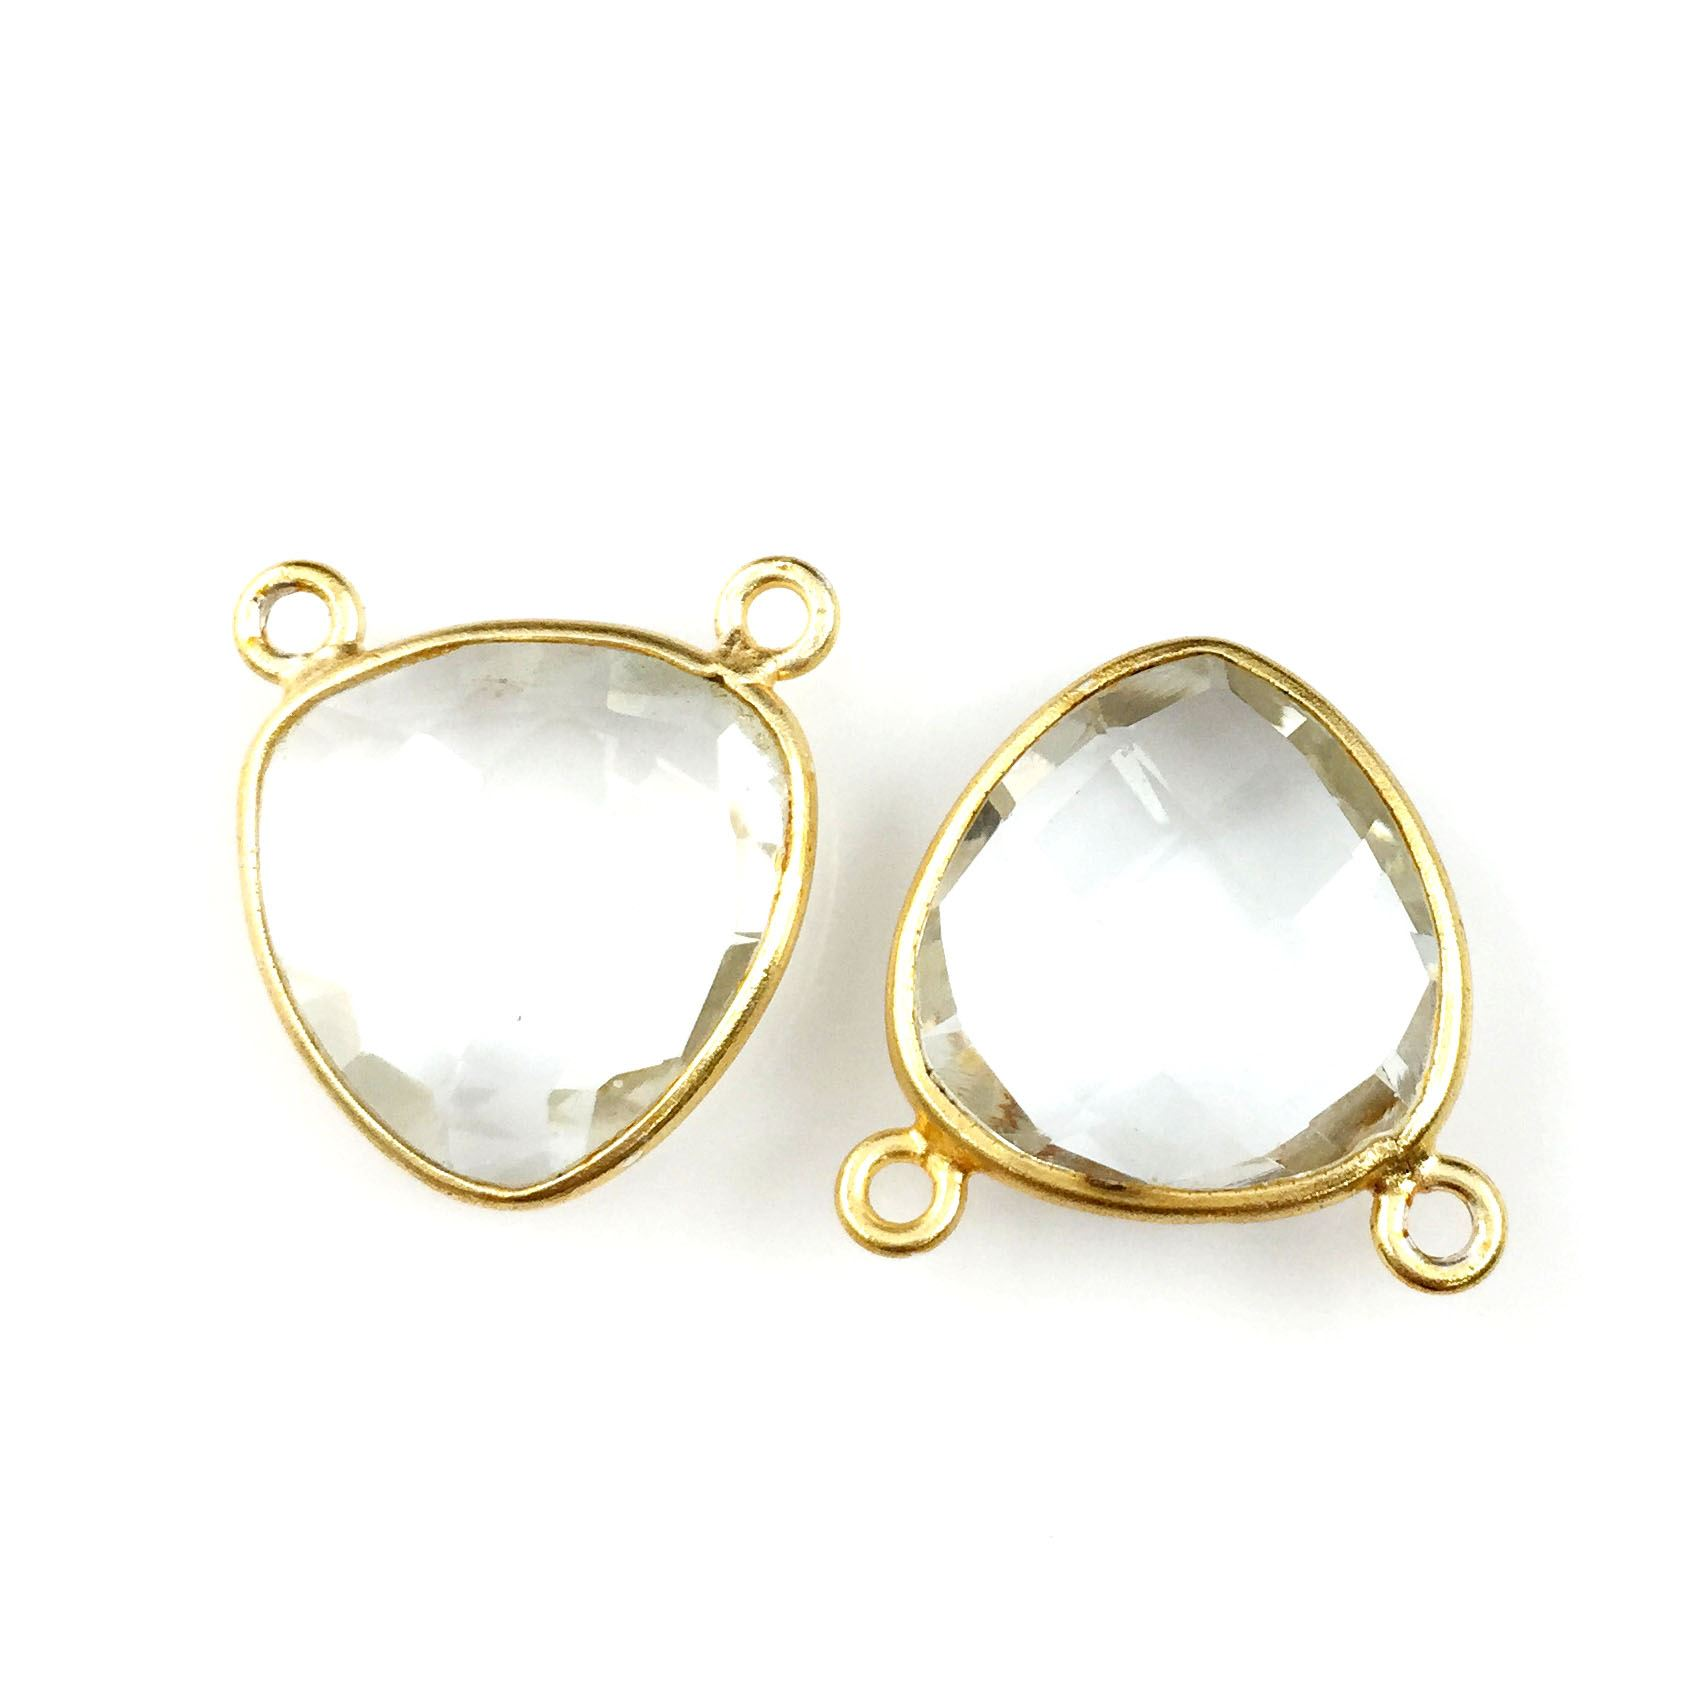 Bezel Gemstone Connector Pendant - Crystal Quartz - Gold plated Sterling Silver - Small Trillion Shaped Faceted - 15mm - 1 piece